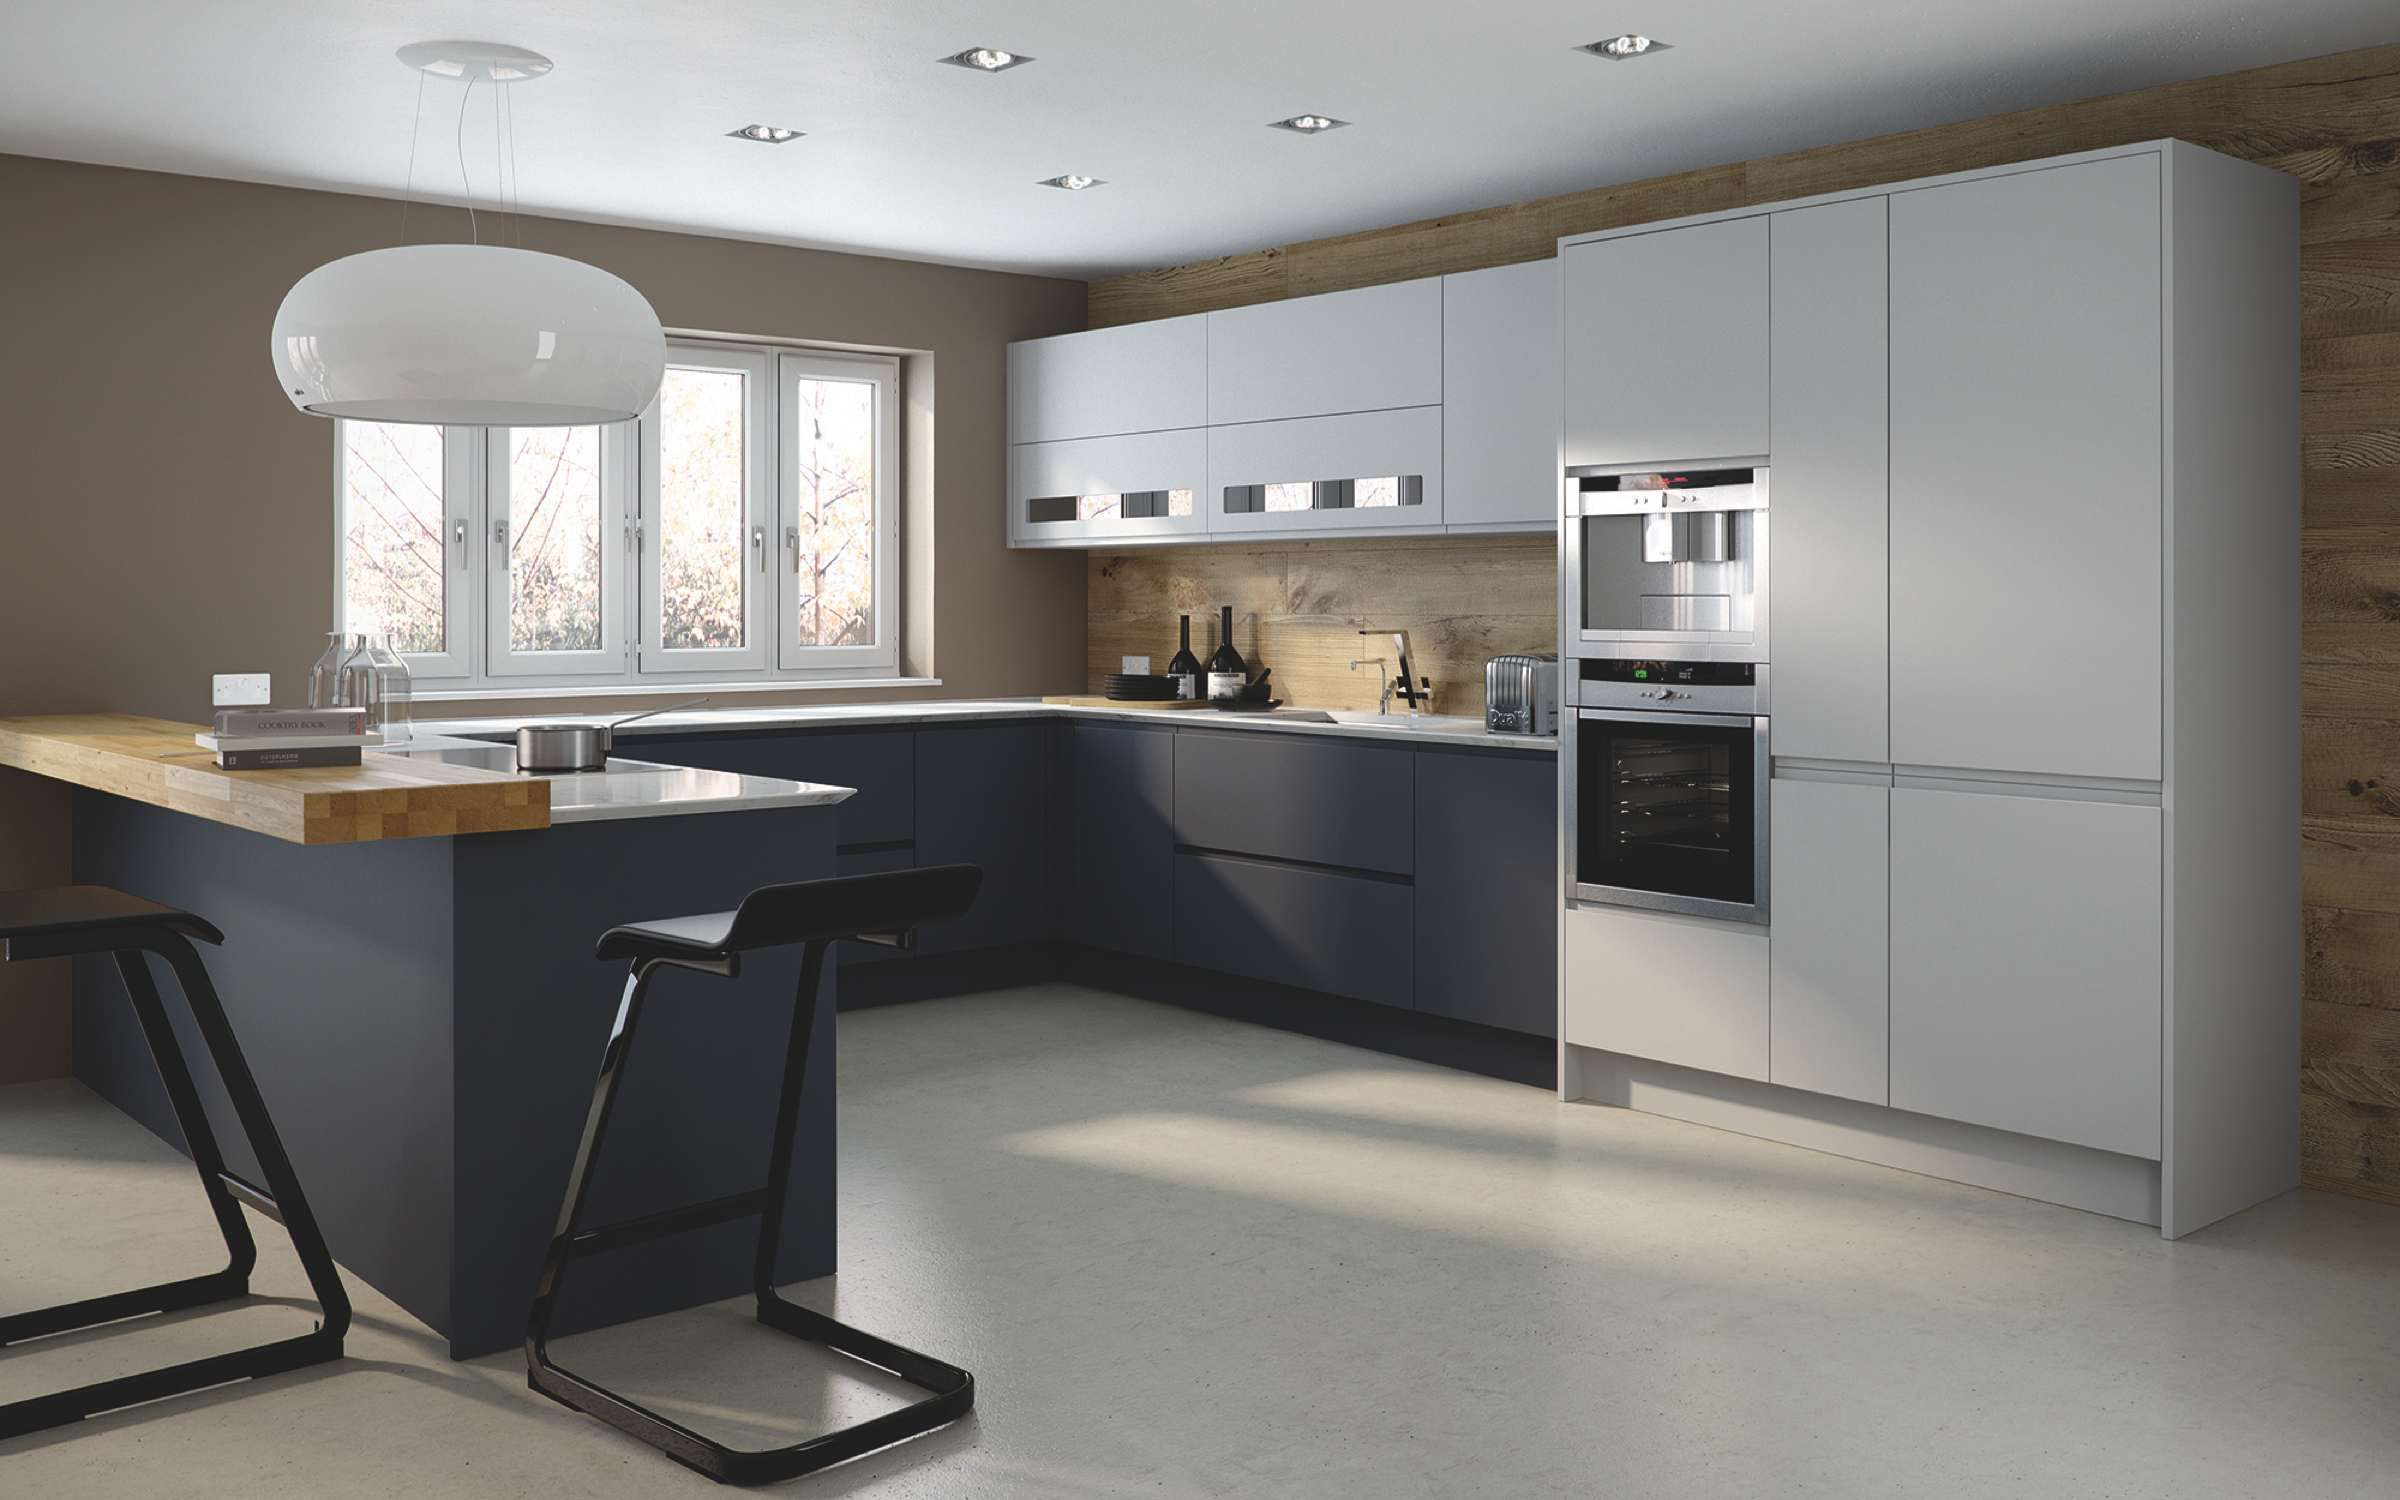 Home Kitchens Ltd